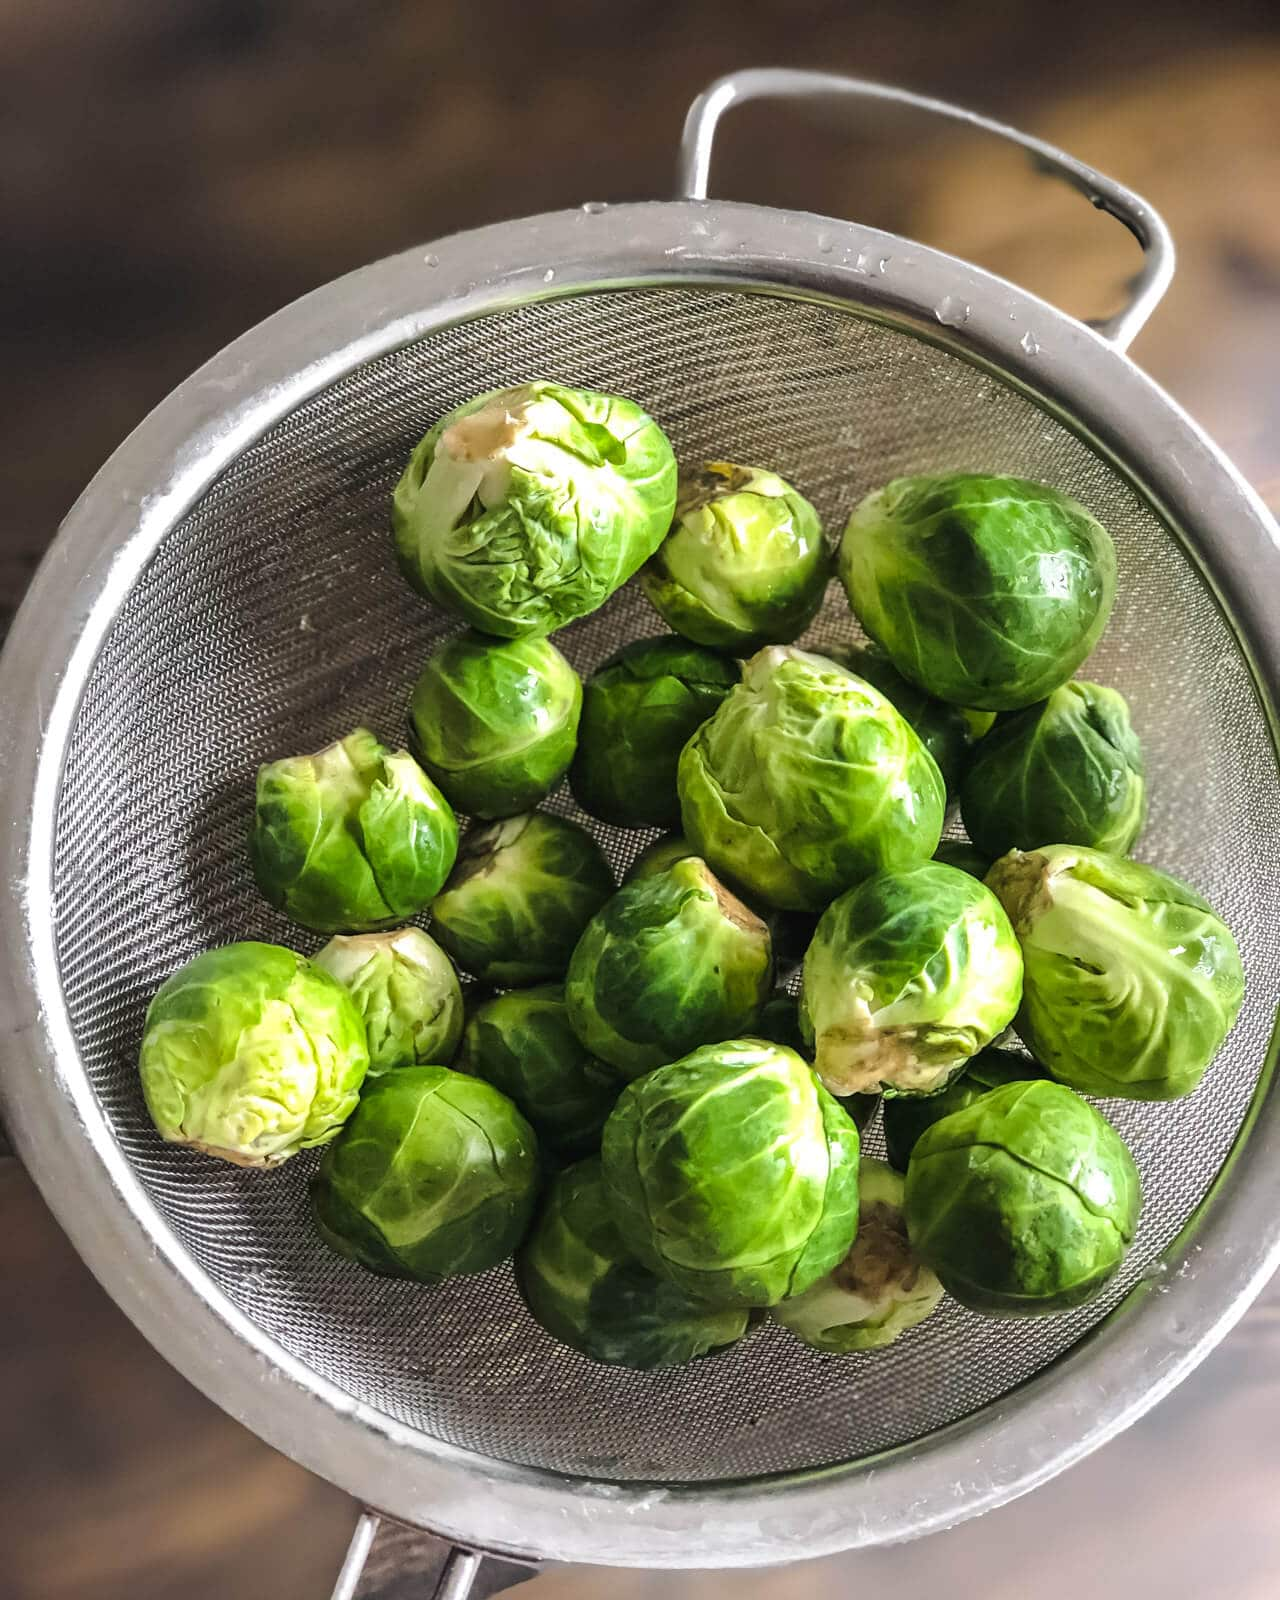 A silver mesh strainer with brussel sprouts over a wooden counter.